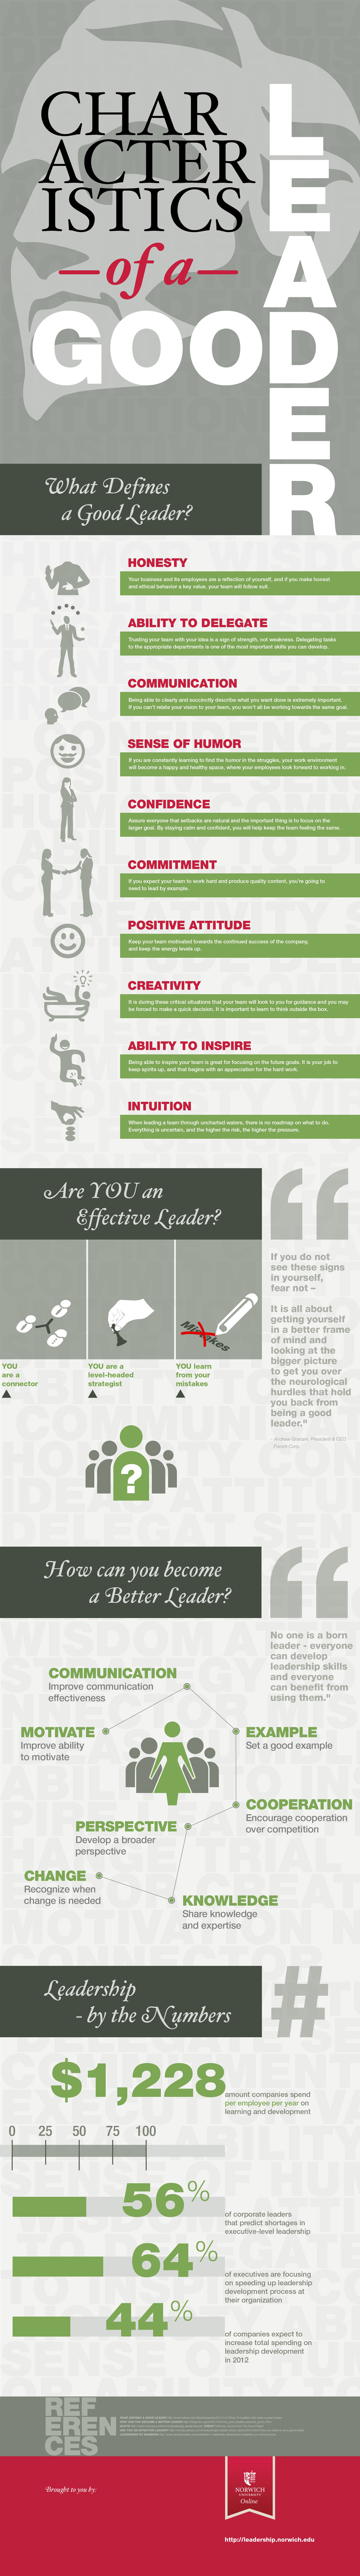 characteristics of a good leader infographics